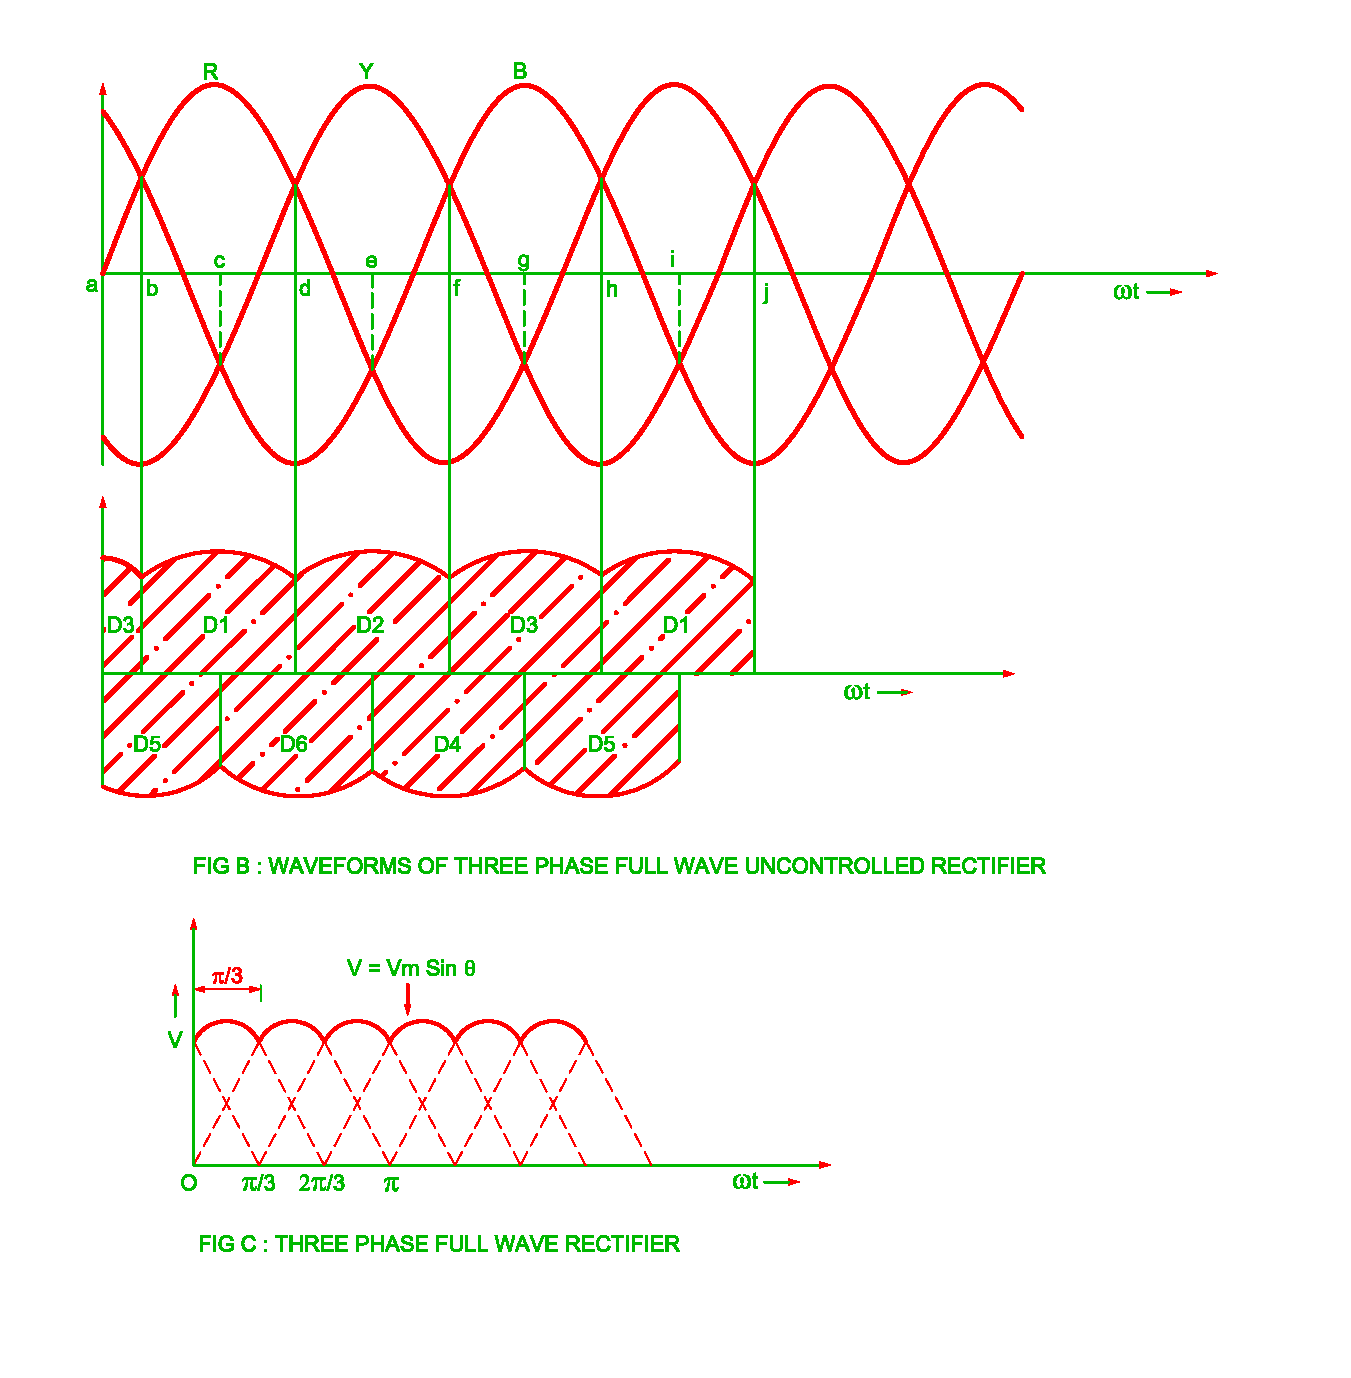 small resolution of three phase fullwave uncontrolled waveforms jpg